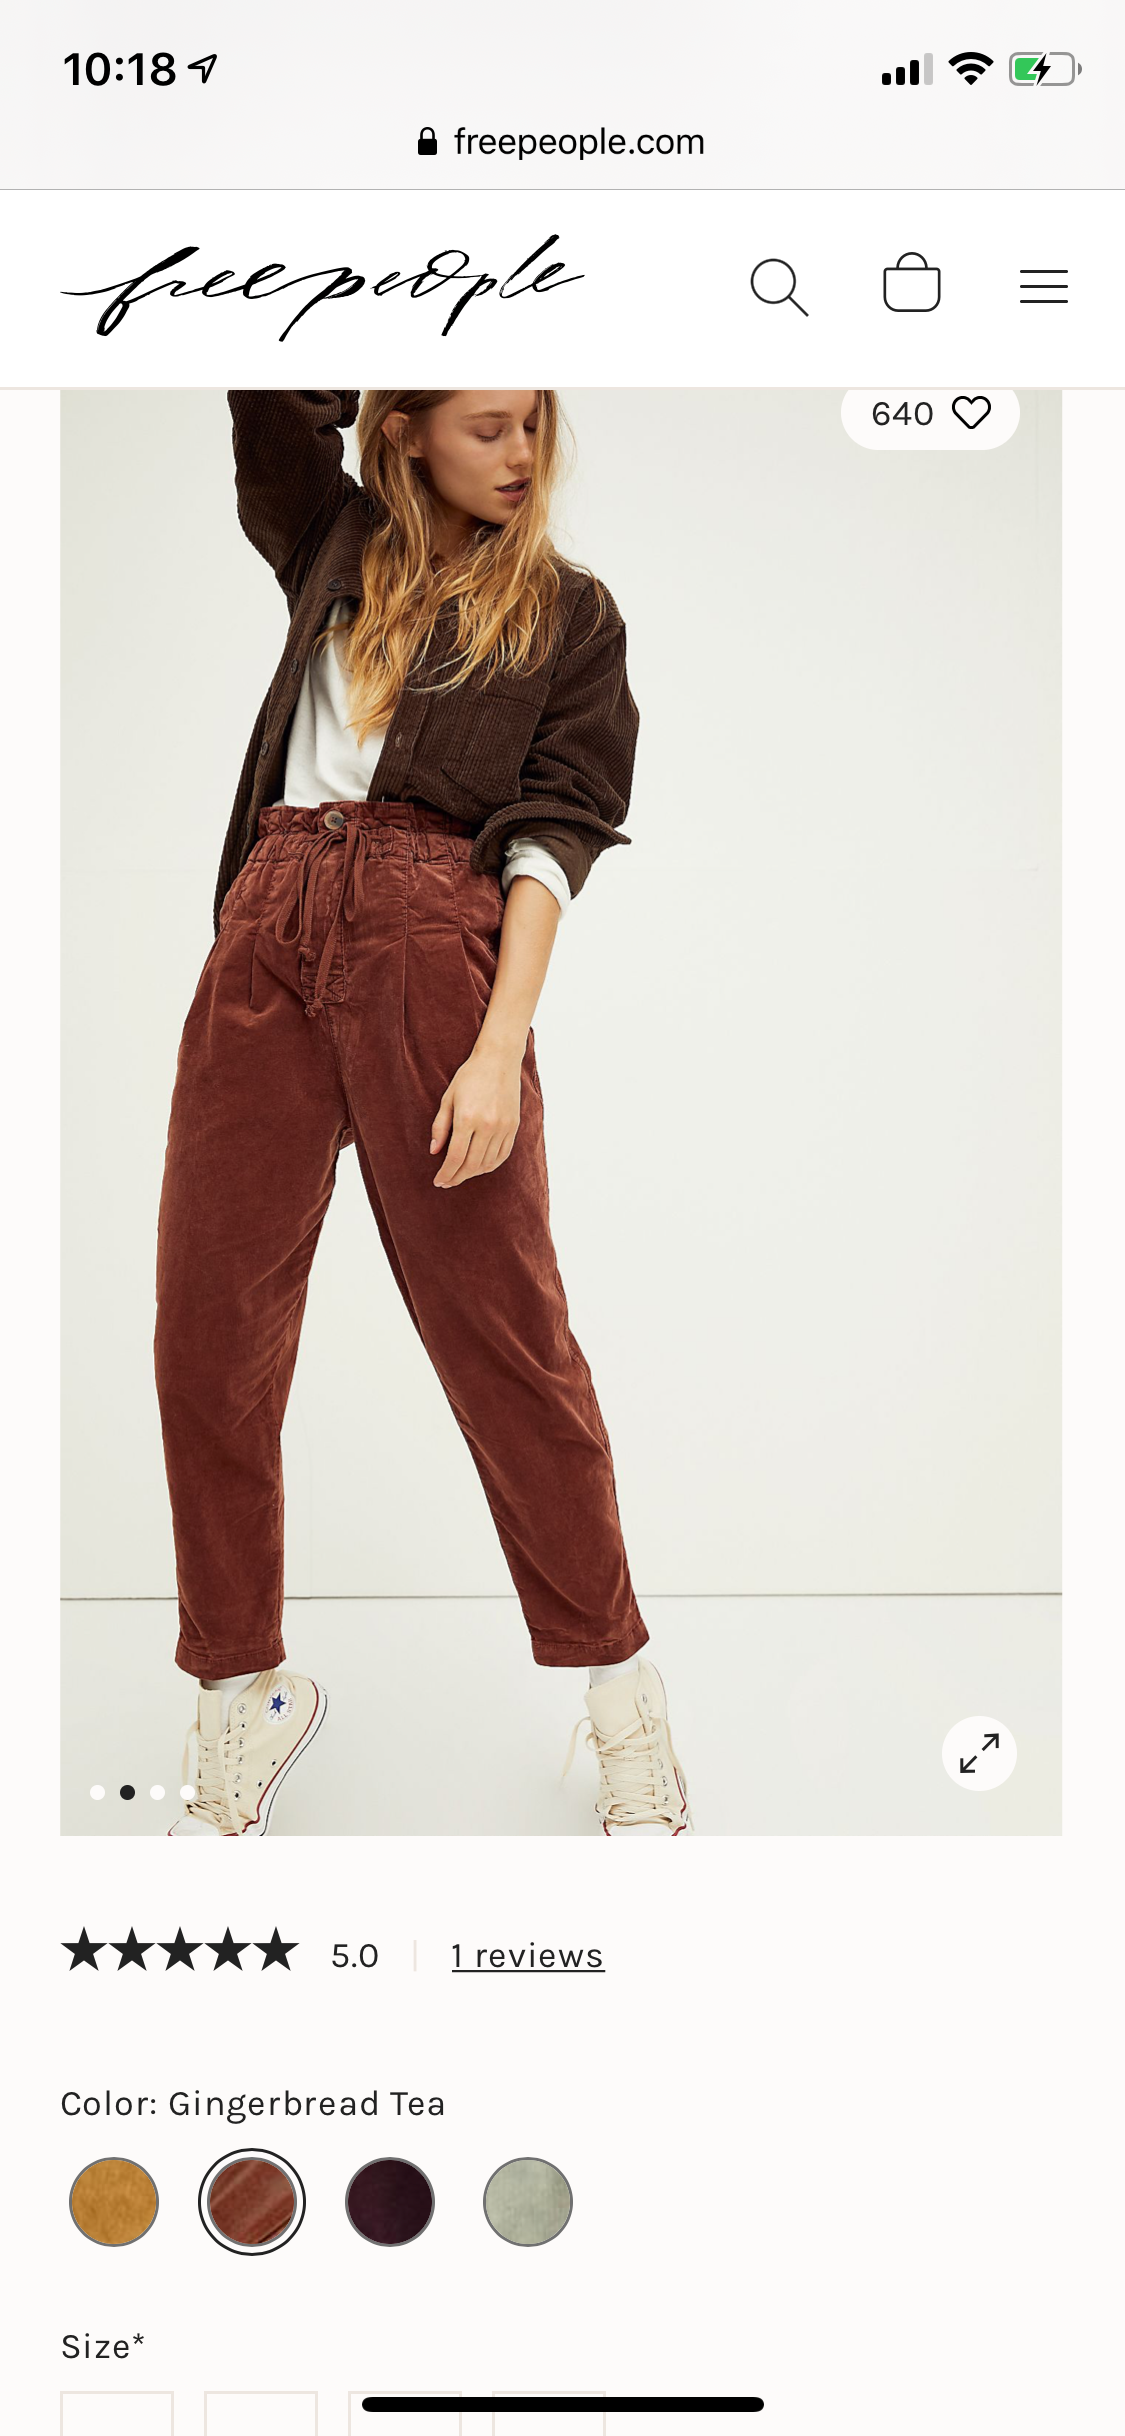 margate gingerbread cord trouser